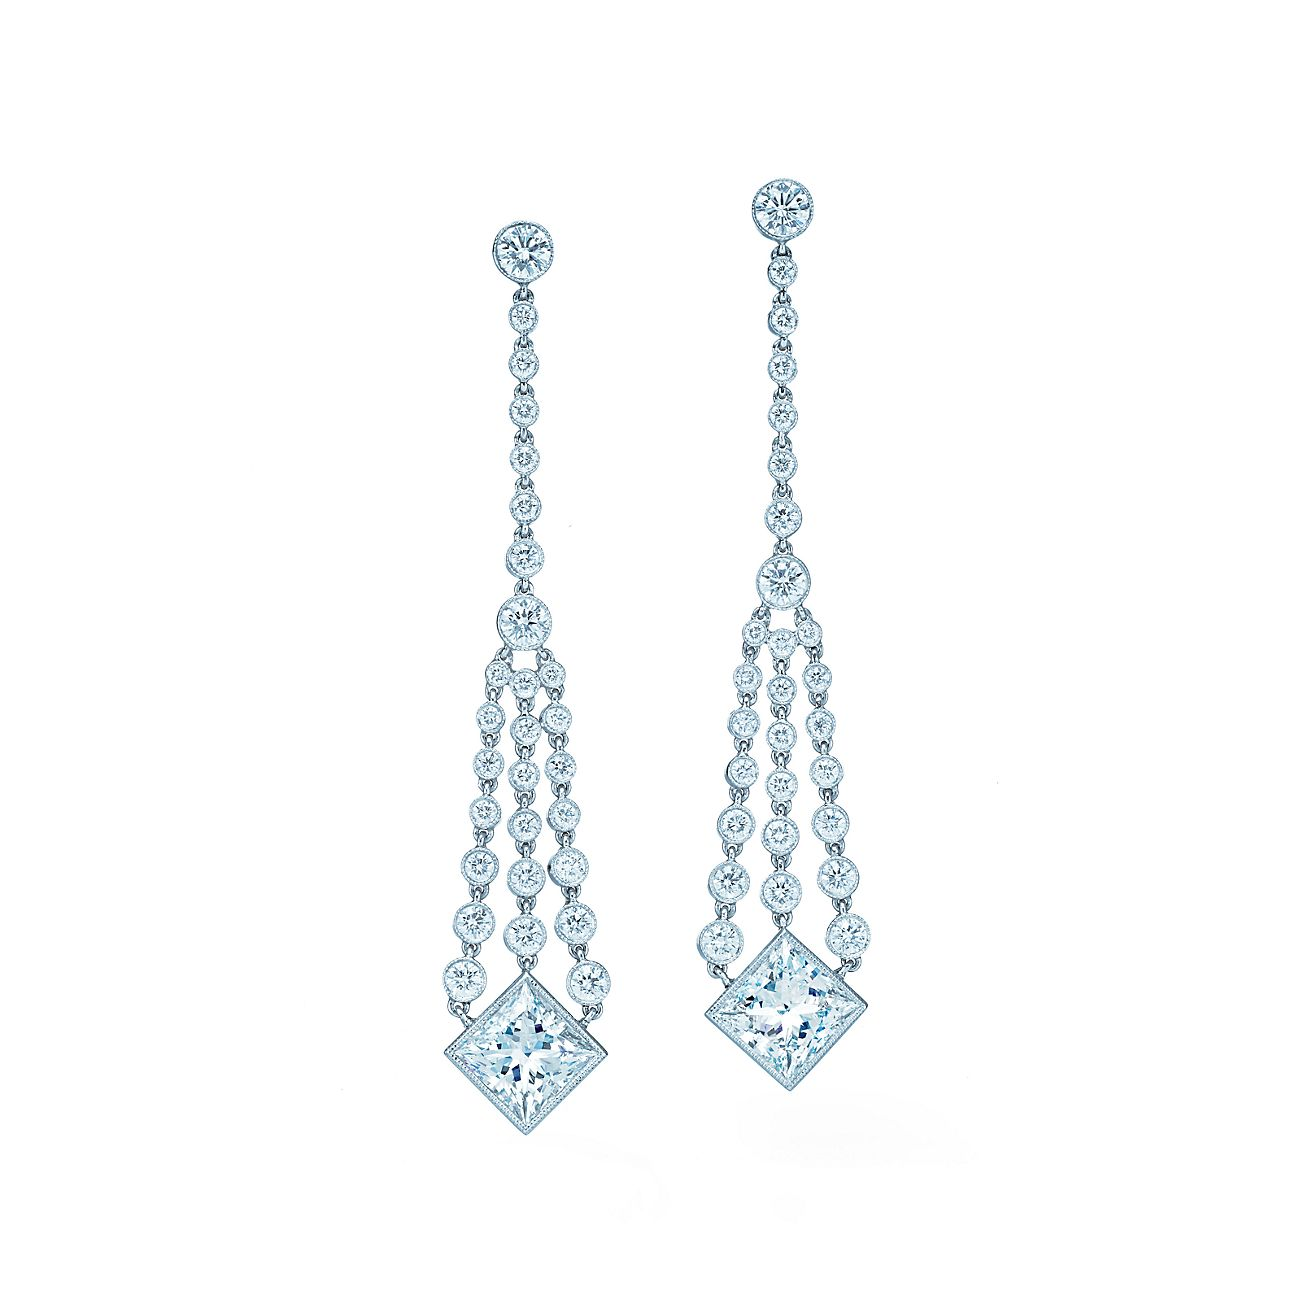 Diamond chandelier earrings of princess-cut and round diamonds in ...